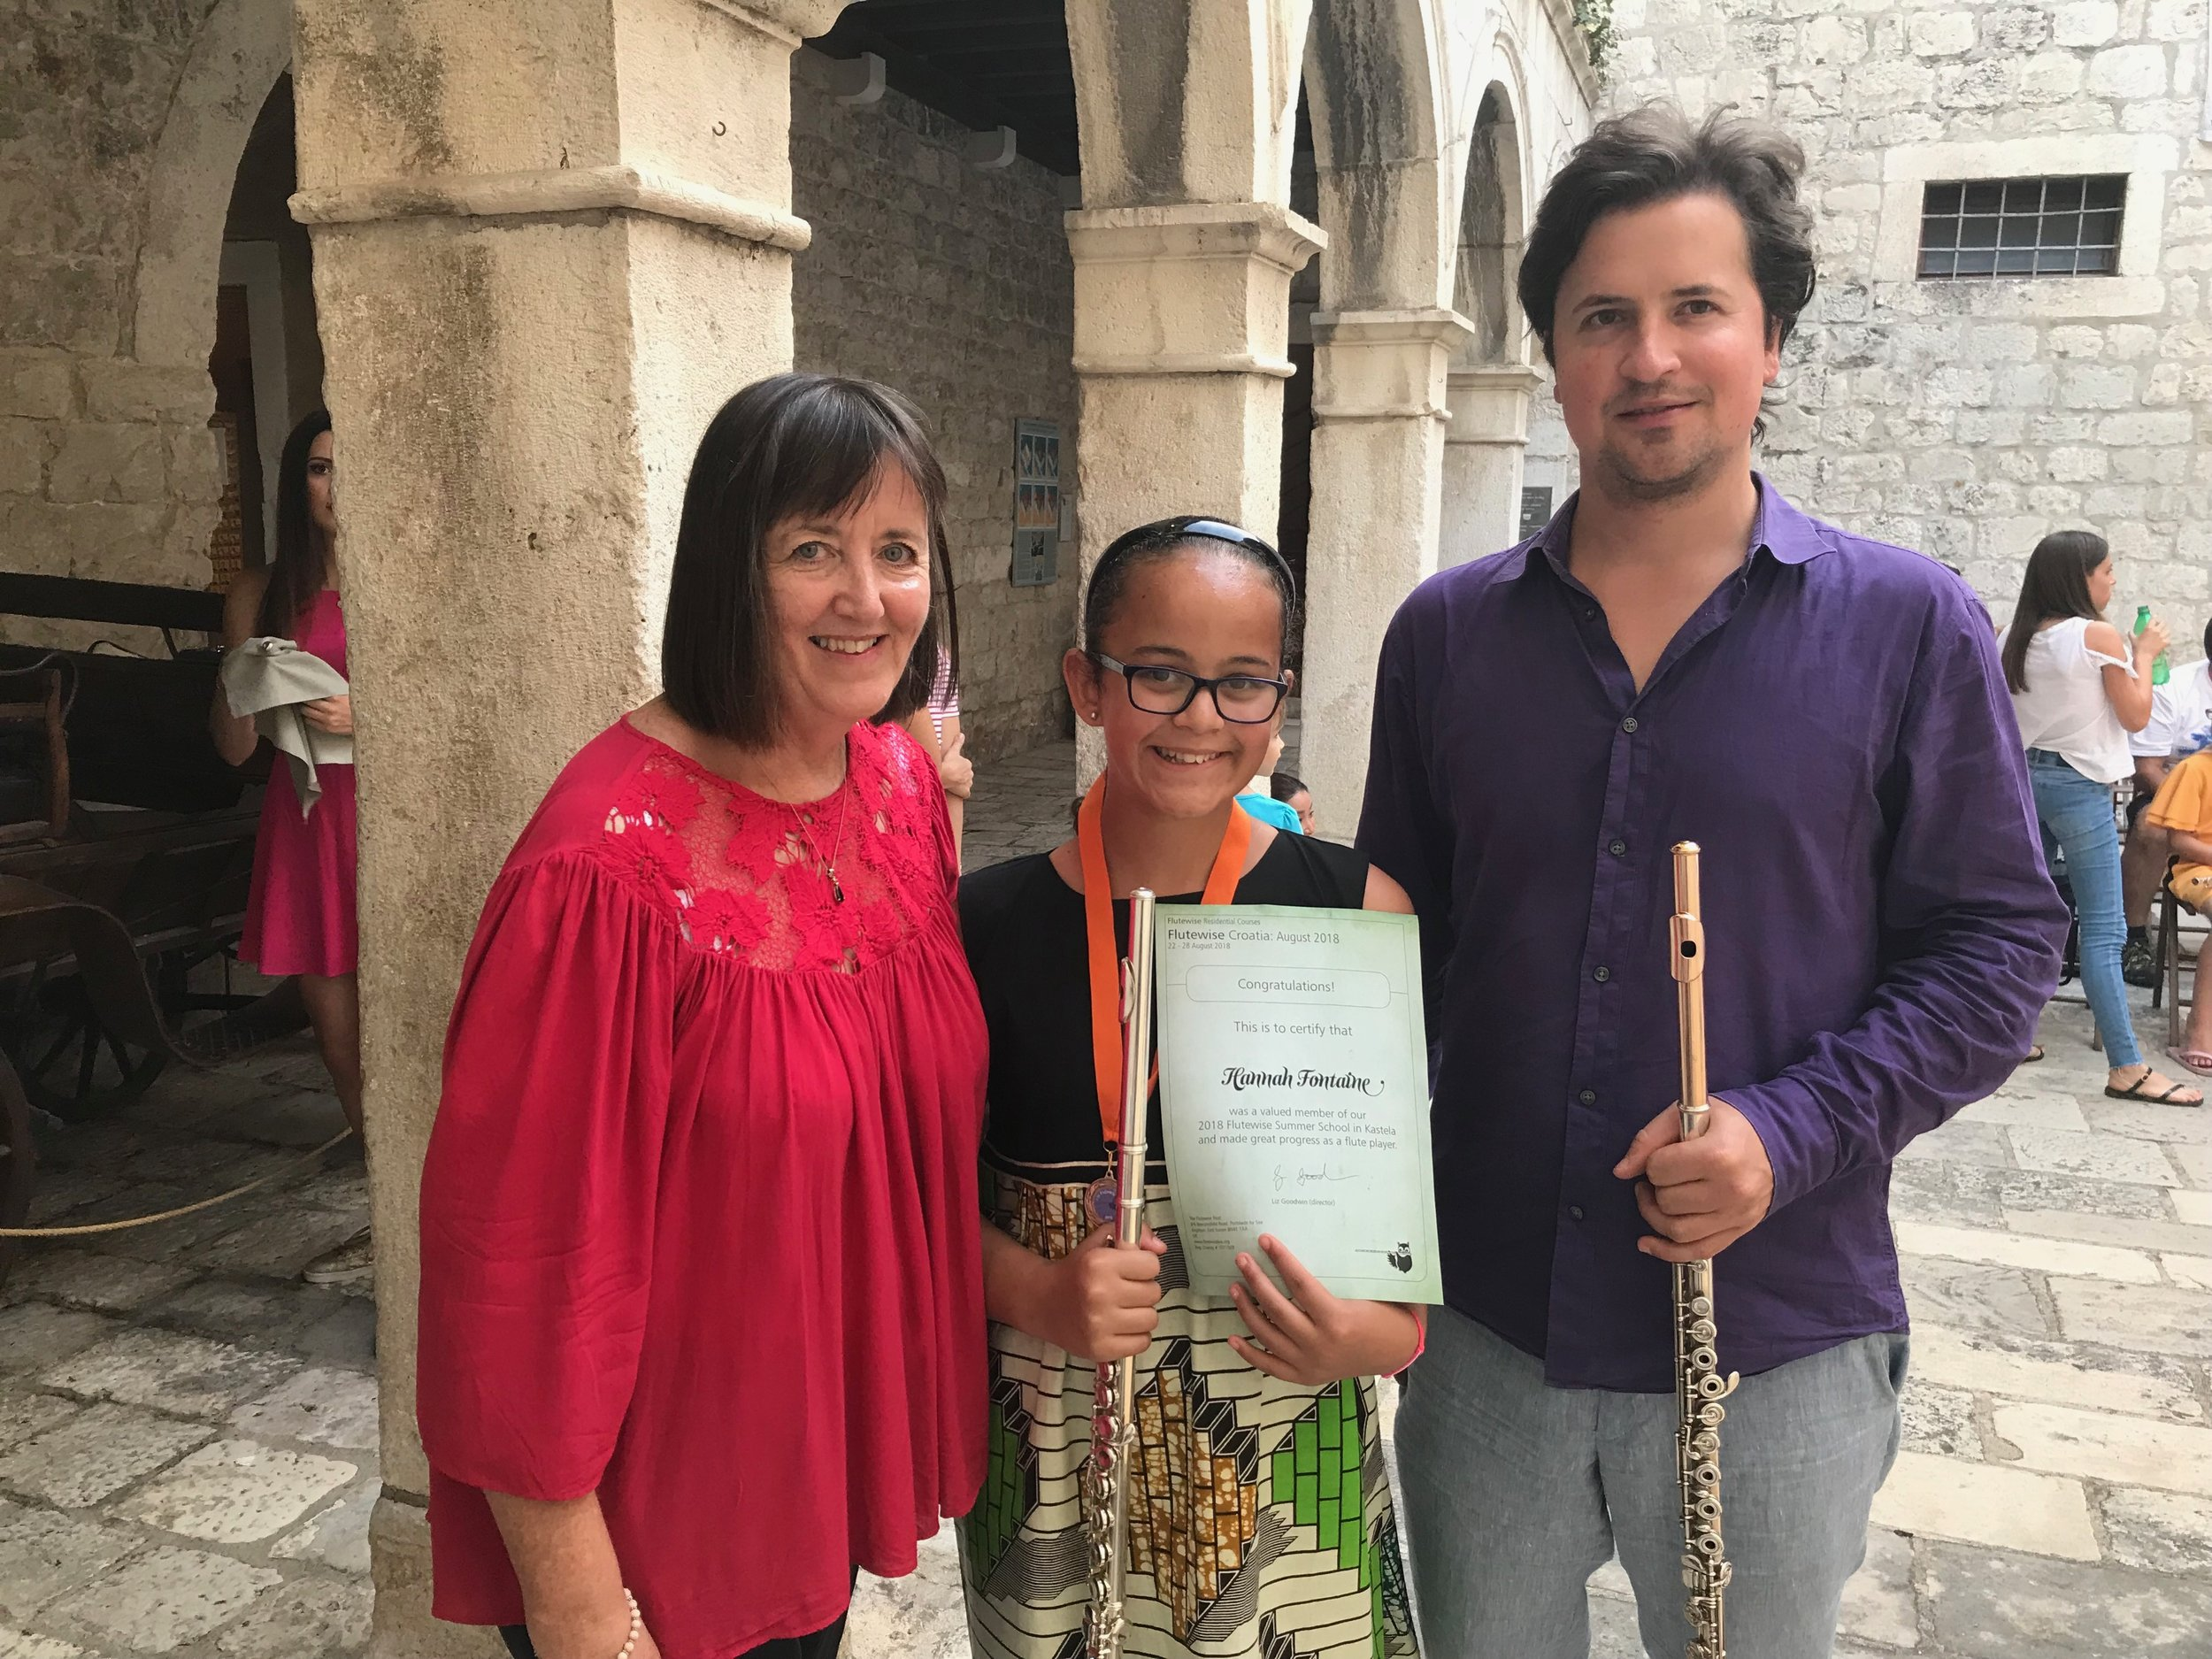 Hannah receiving her certificate with Liz and Marko Zupan